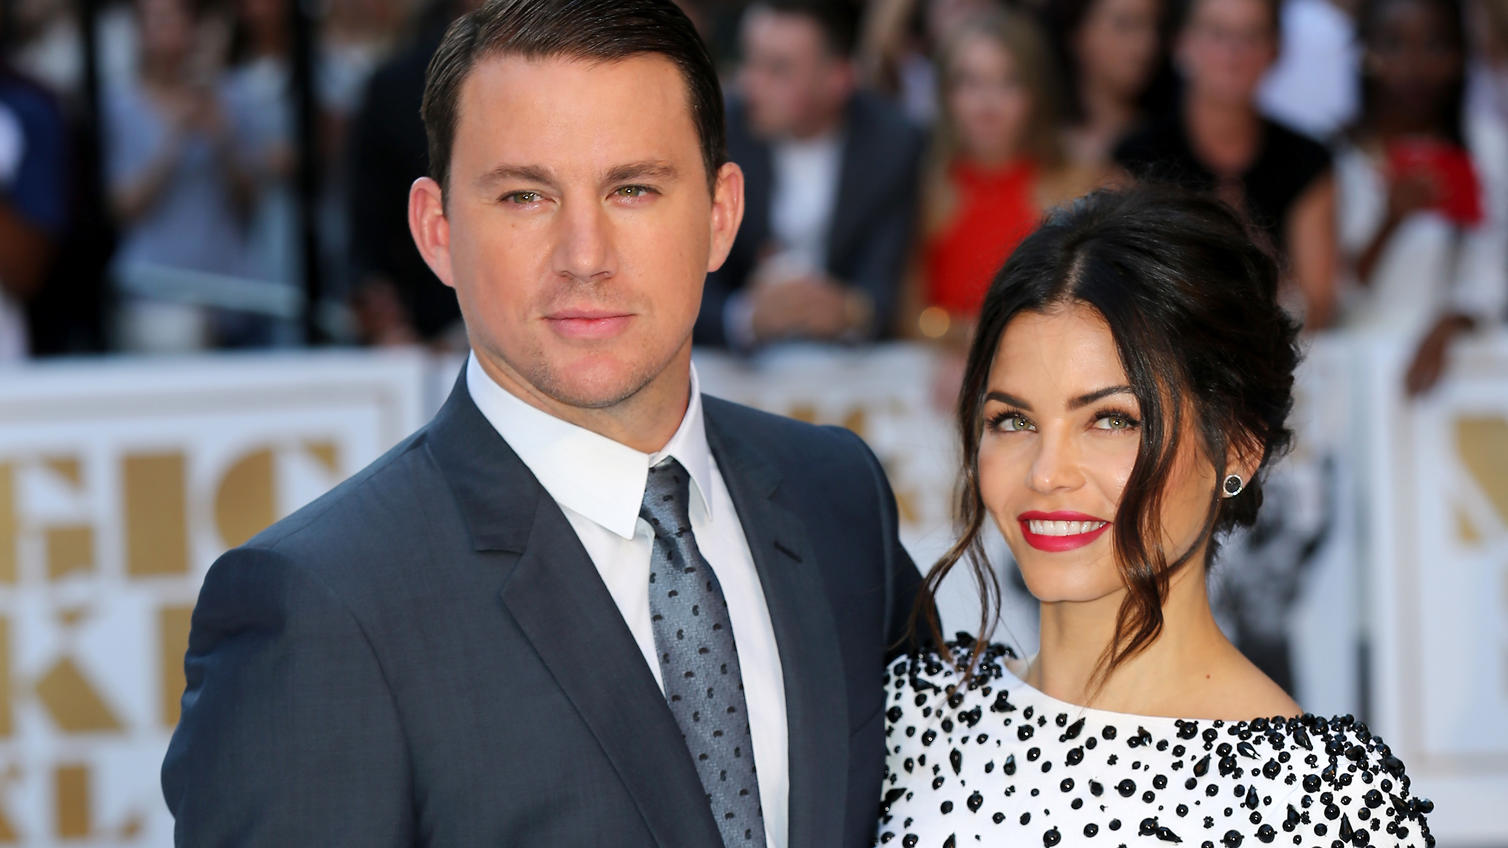 Channing Tatum & Jenna Dewan Are Seperating After Nearly 9 Years of Marriage